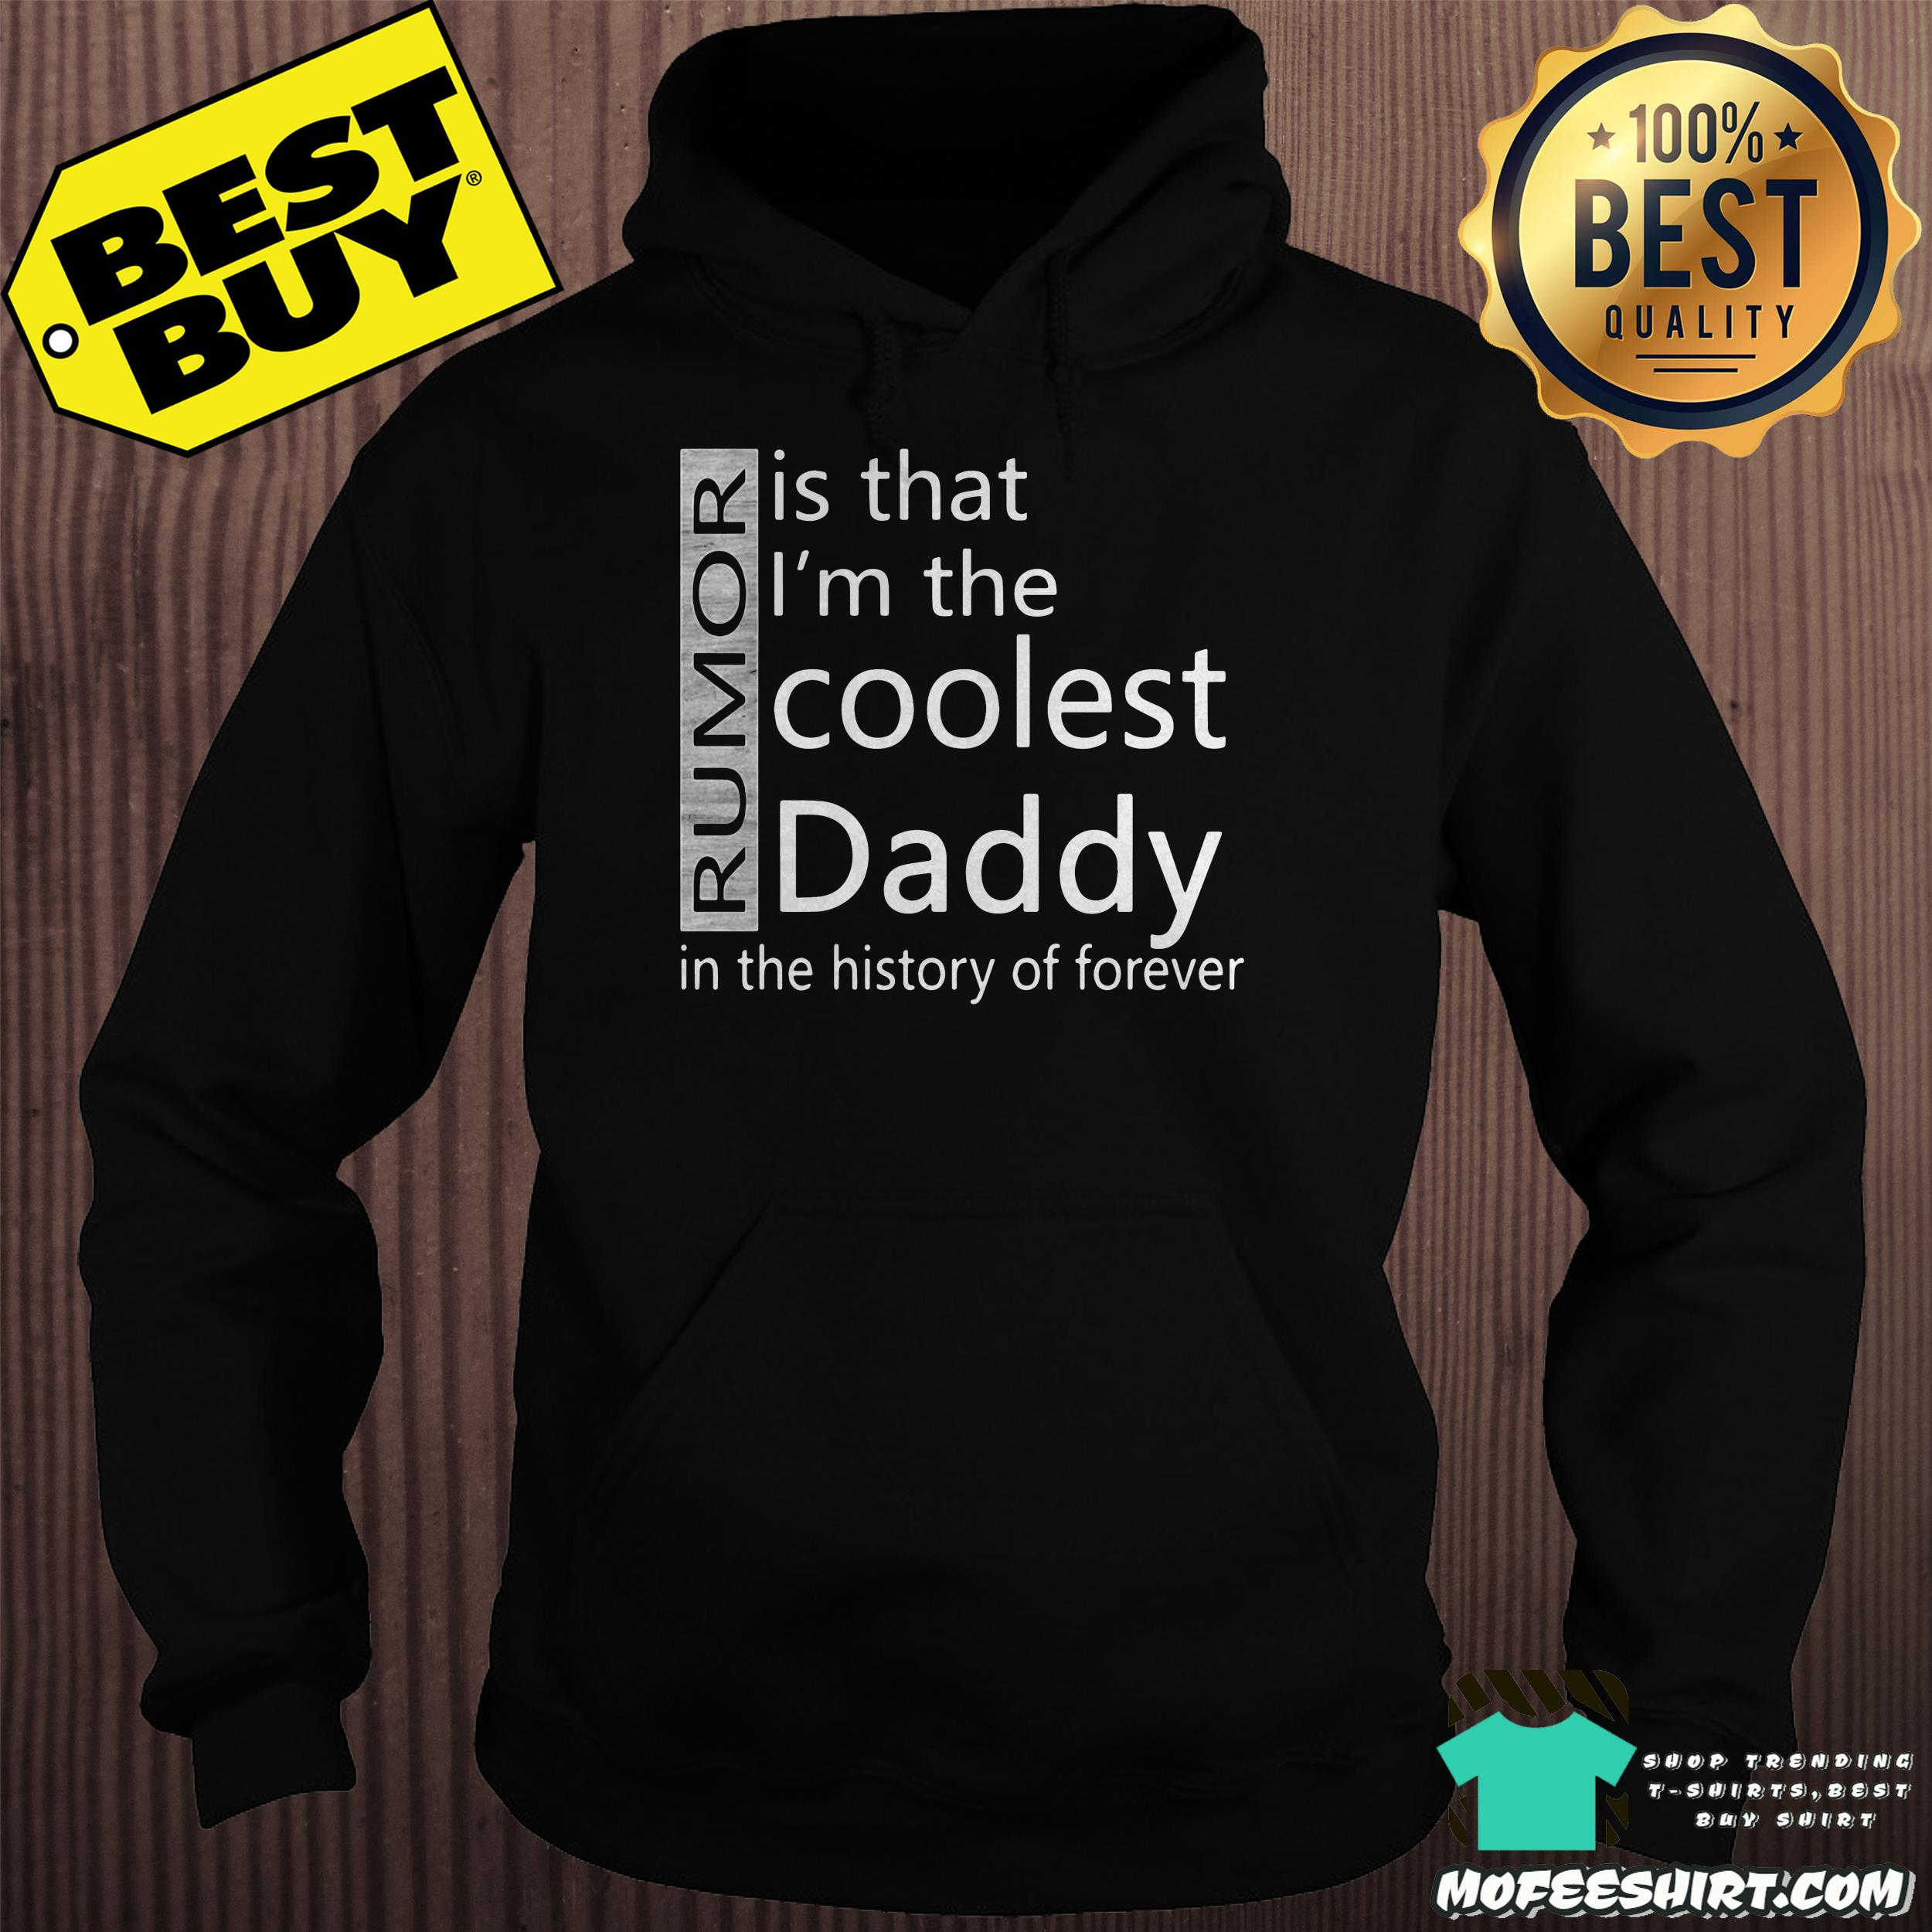 rumor is that im the coolest daddy in the history of forever hoodie - Rumor is that I'm the coolest Daddy in the history of forever shirt